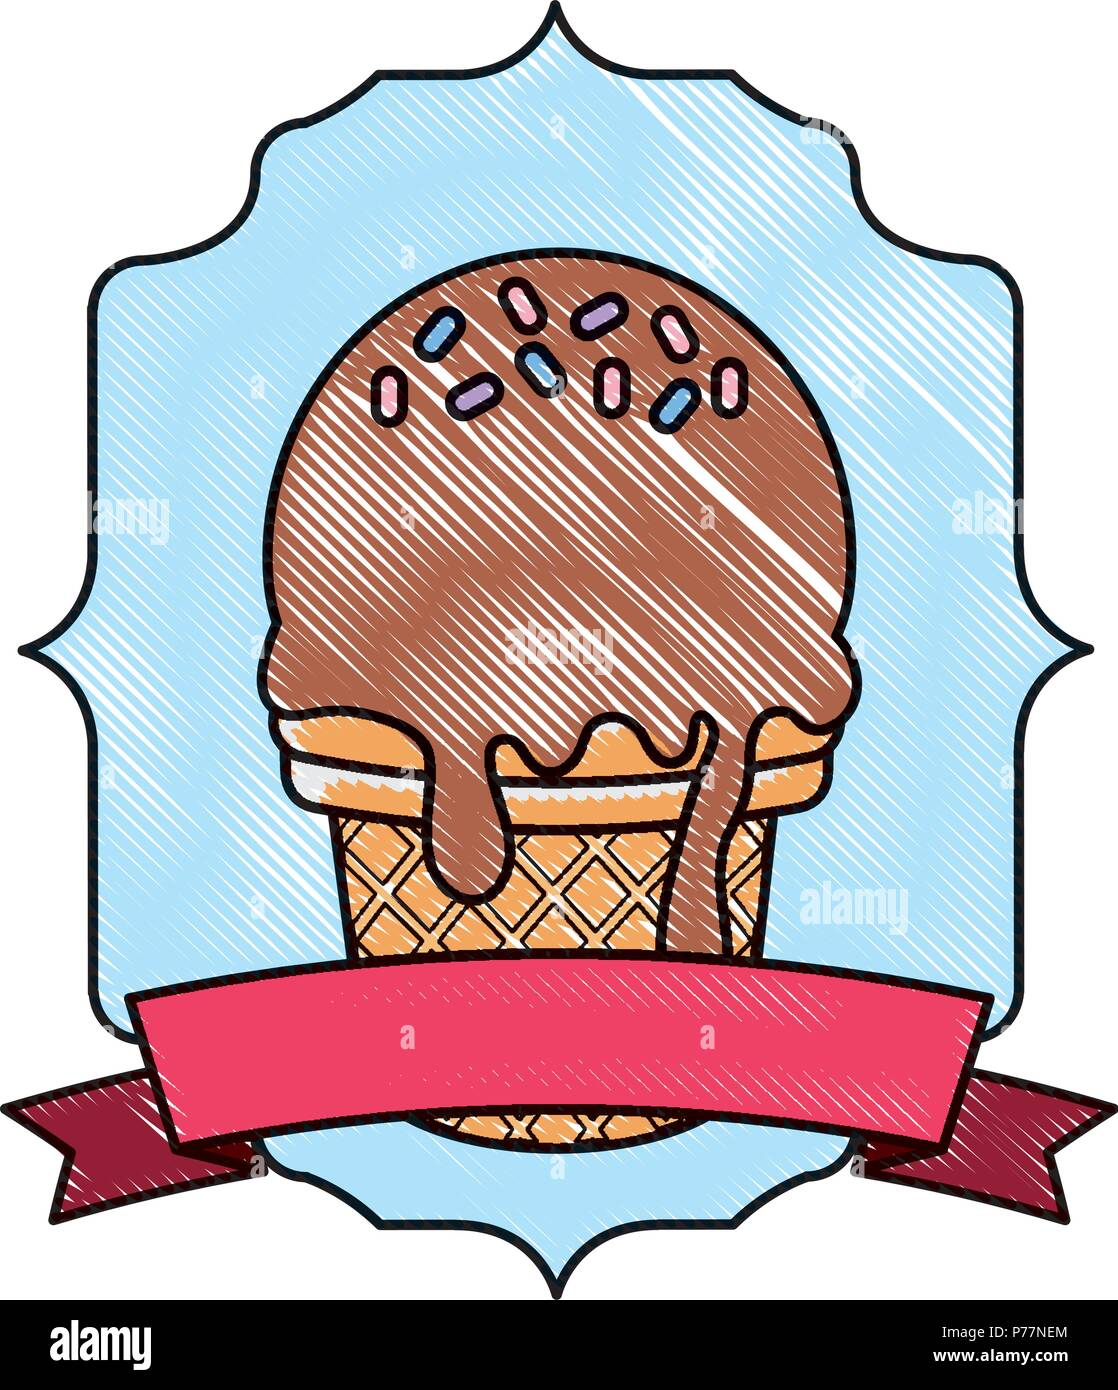 Vintage frame with ice cream with sprinkles and decorative ribbon over white background, vector illustration - Stock Image